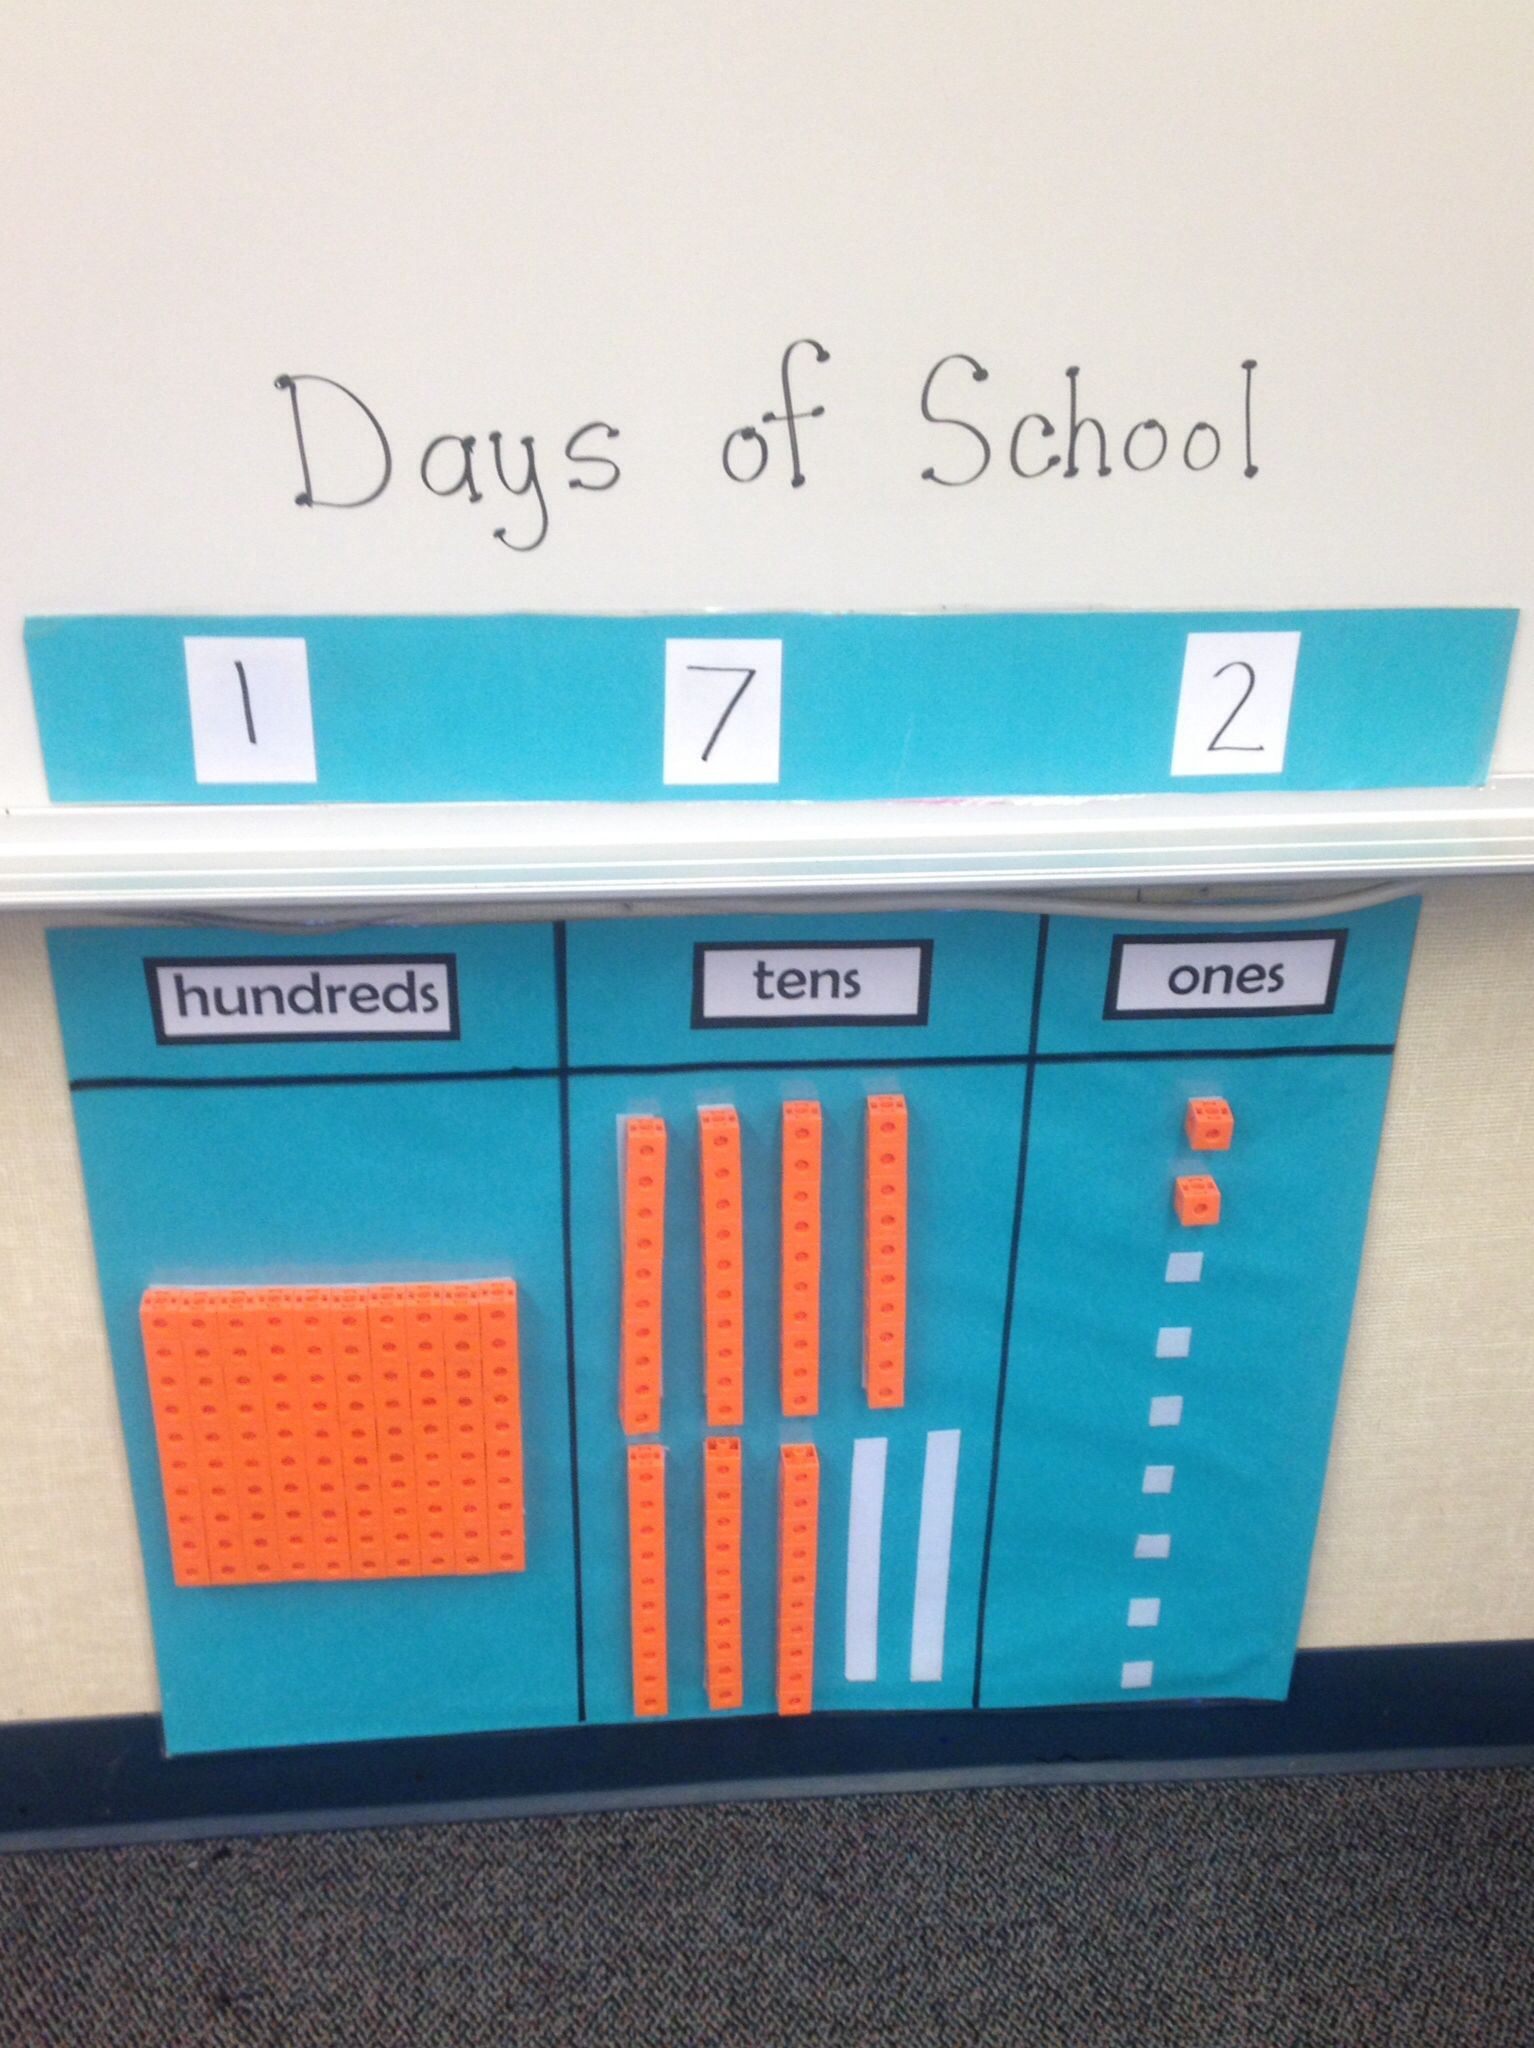 Days Of School With Unifix Cubes